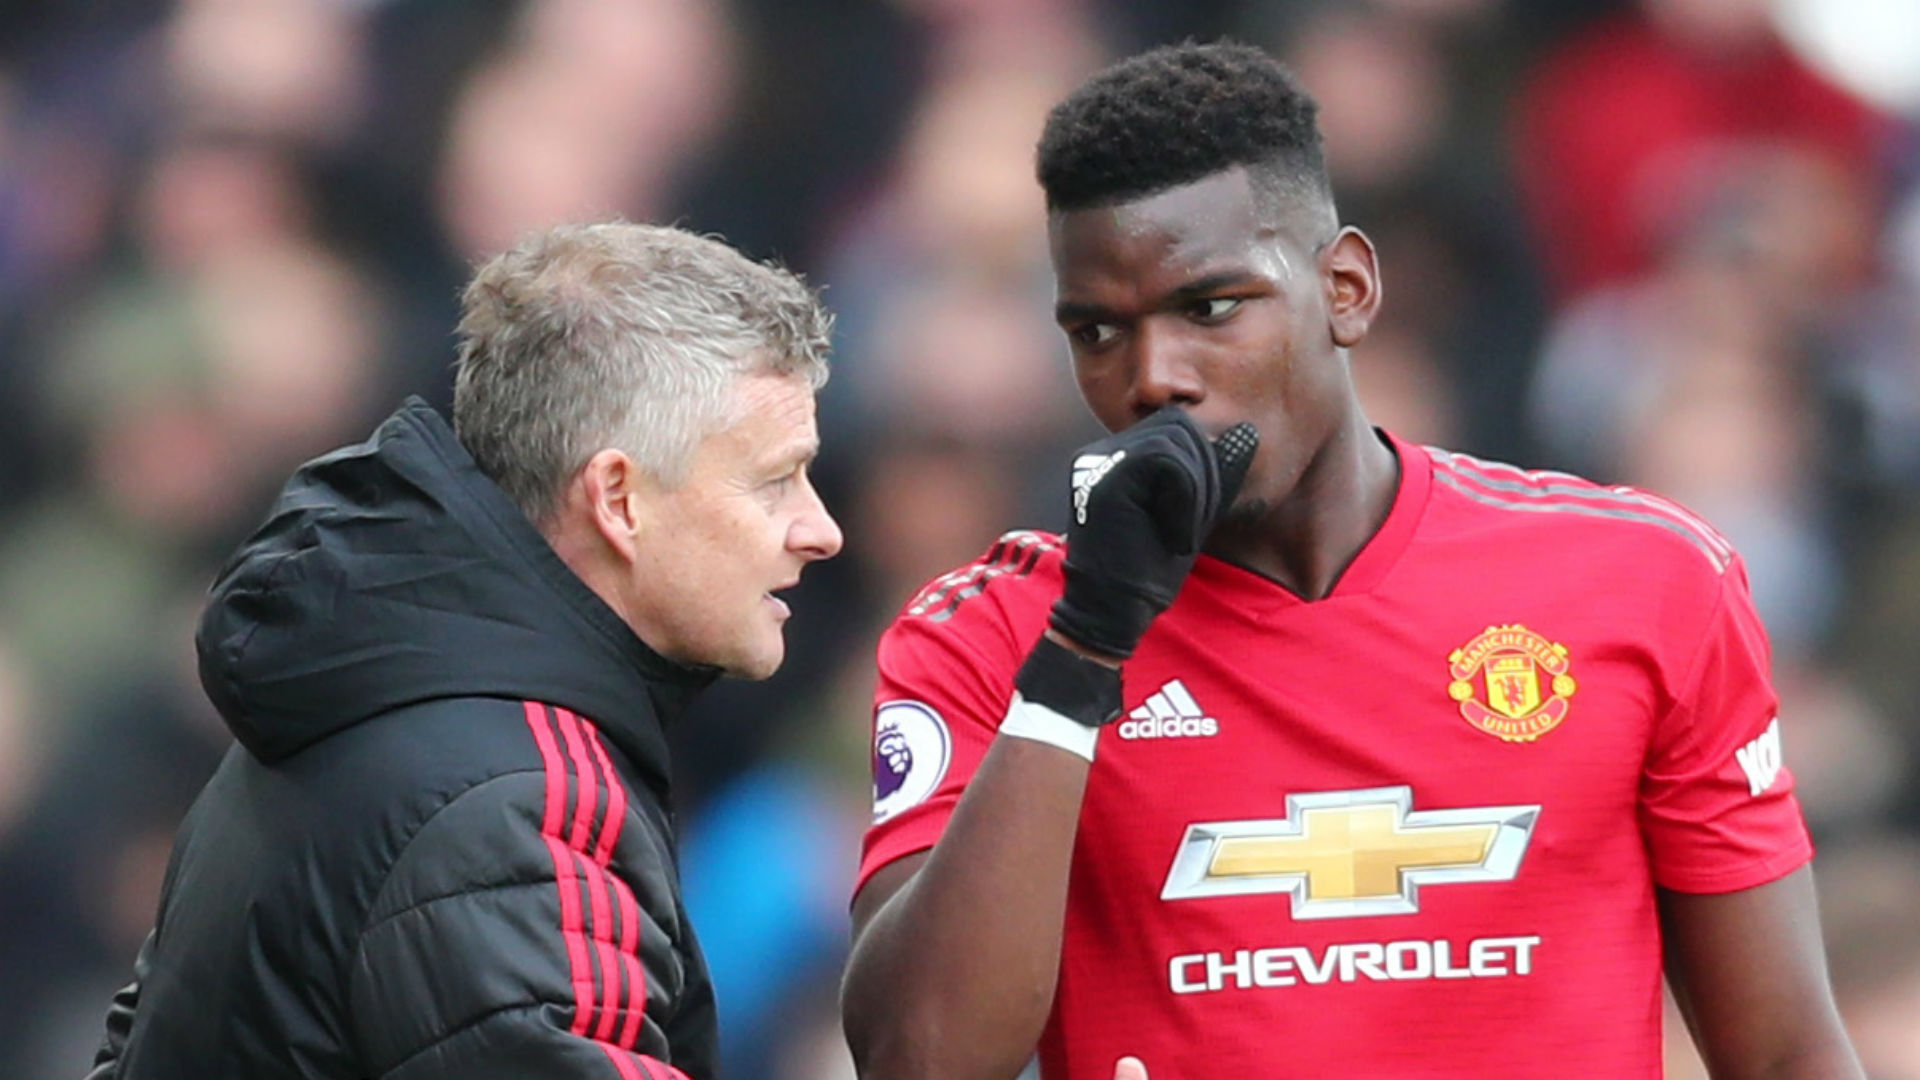 He's not going to go – Solskjaer rules out January move for Pogba